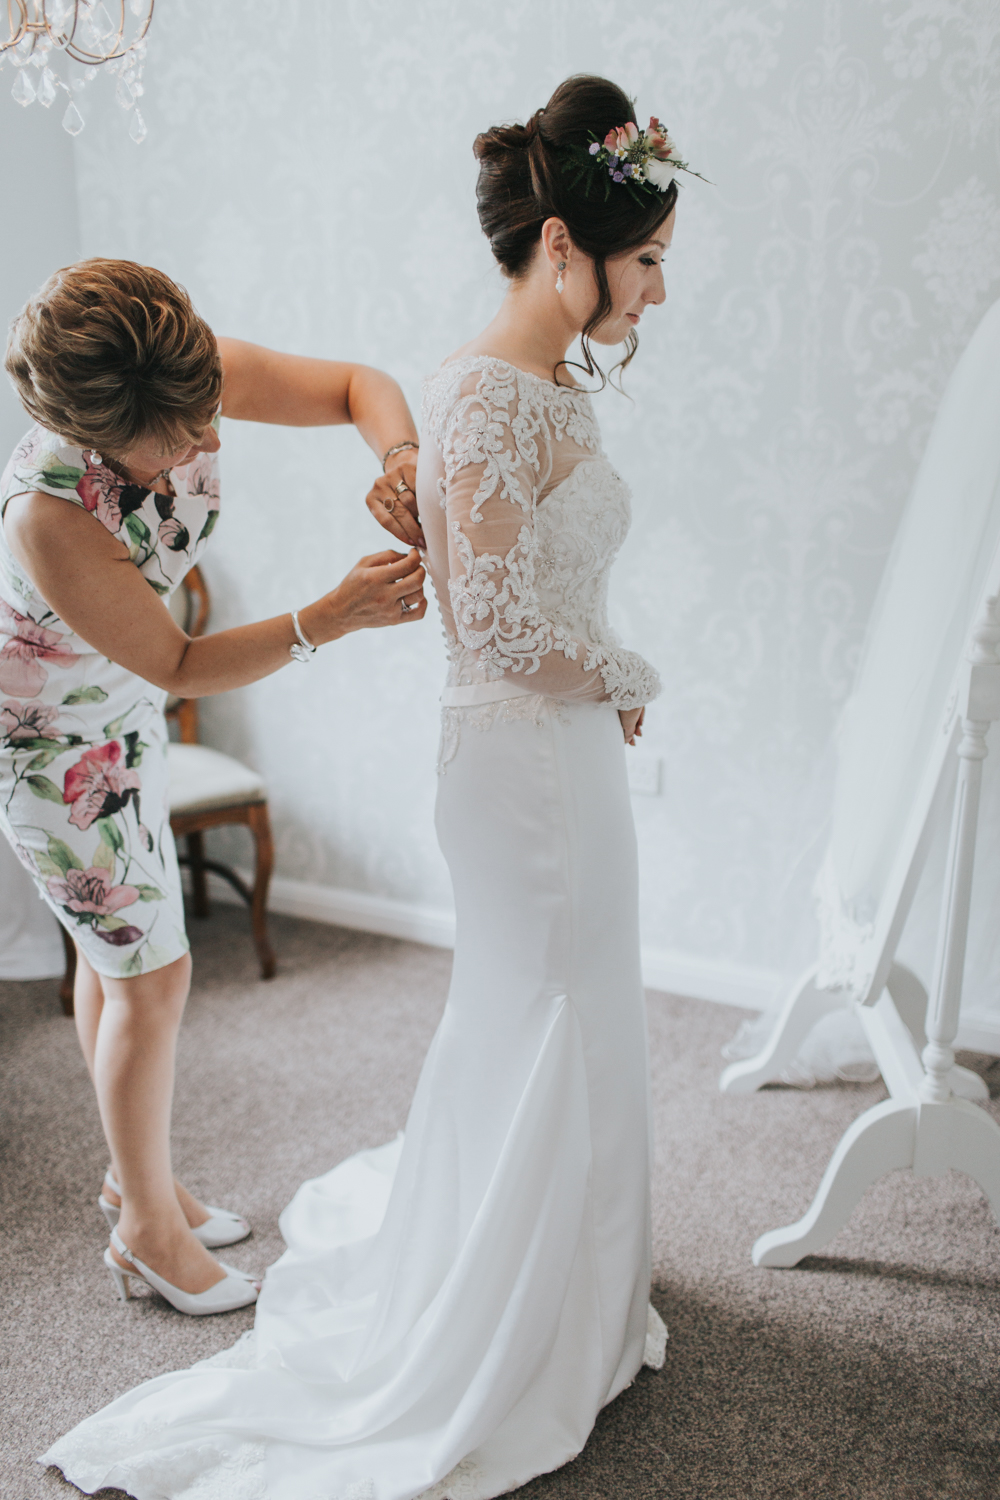 Bride In Lace Dress With Long Sleeves